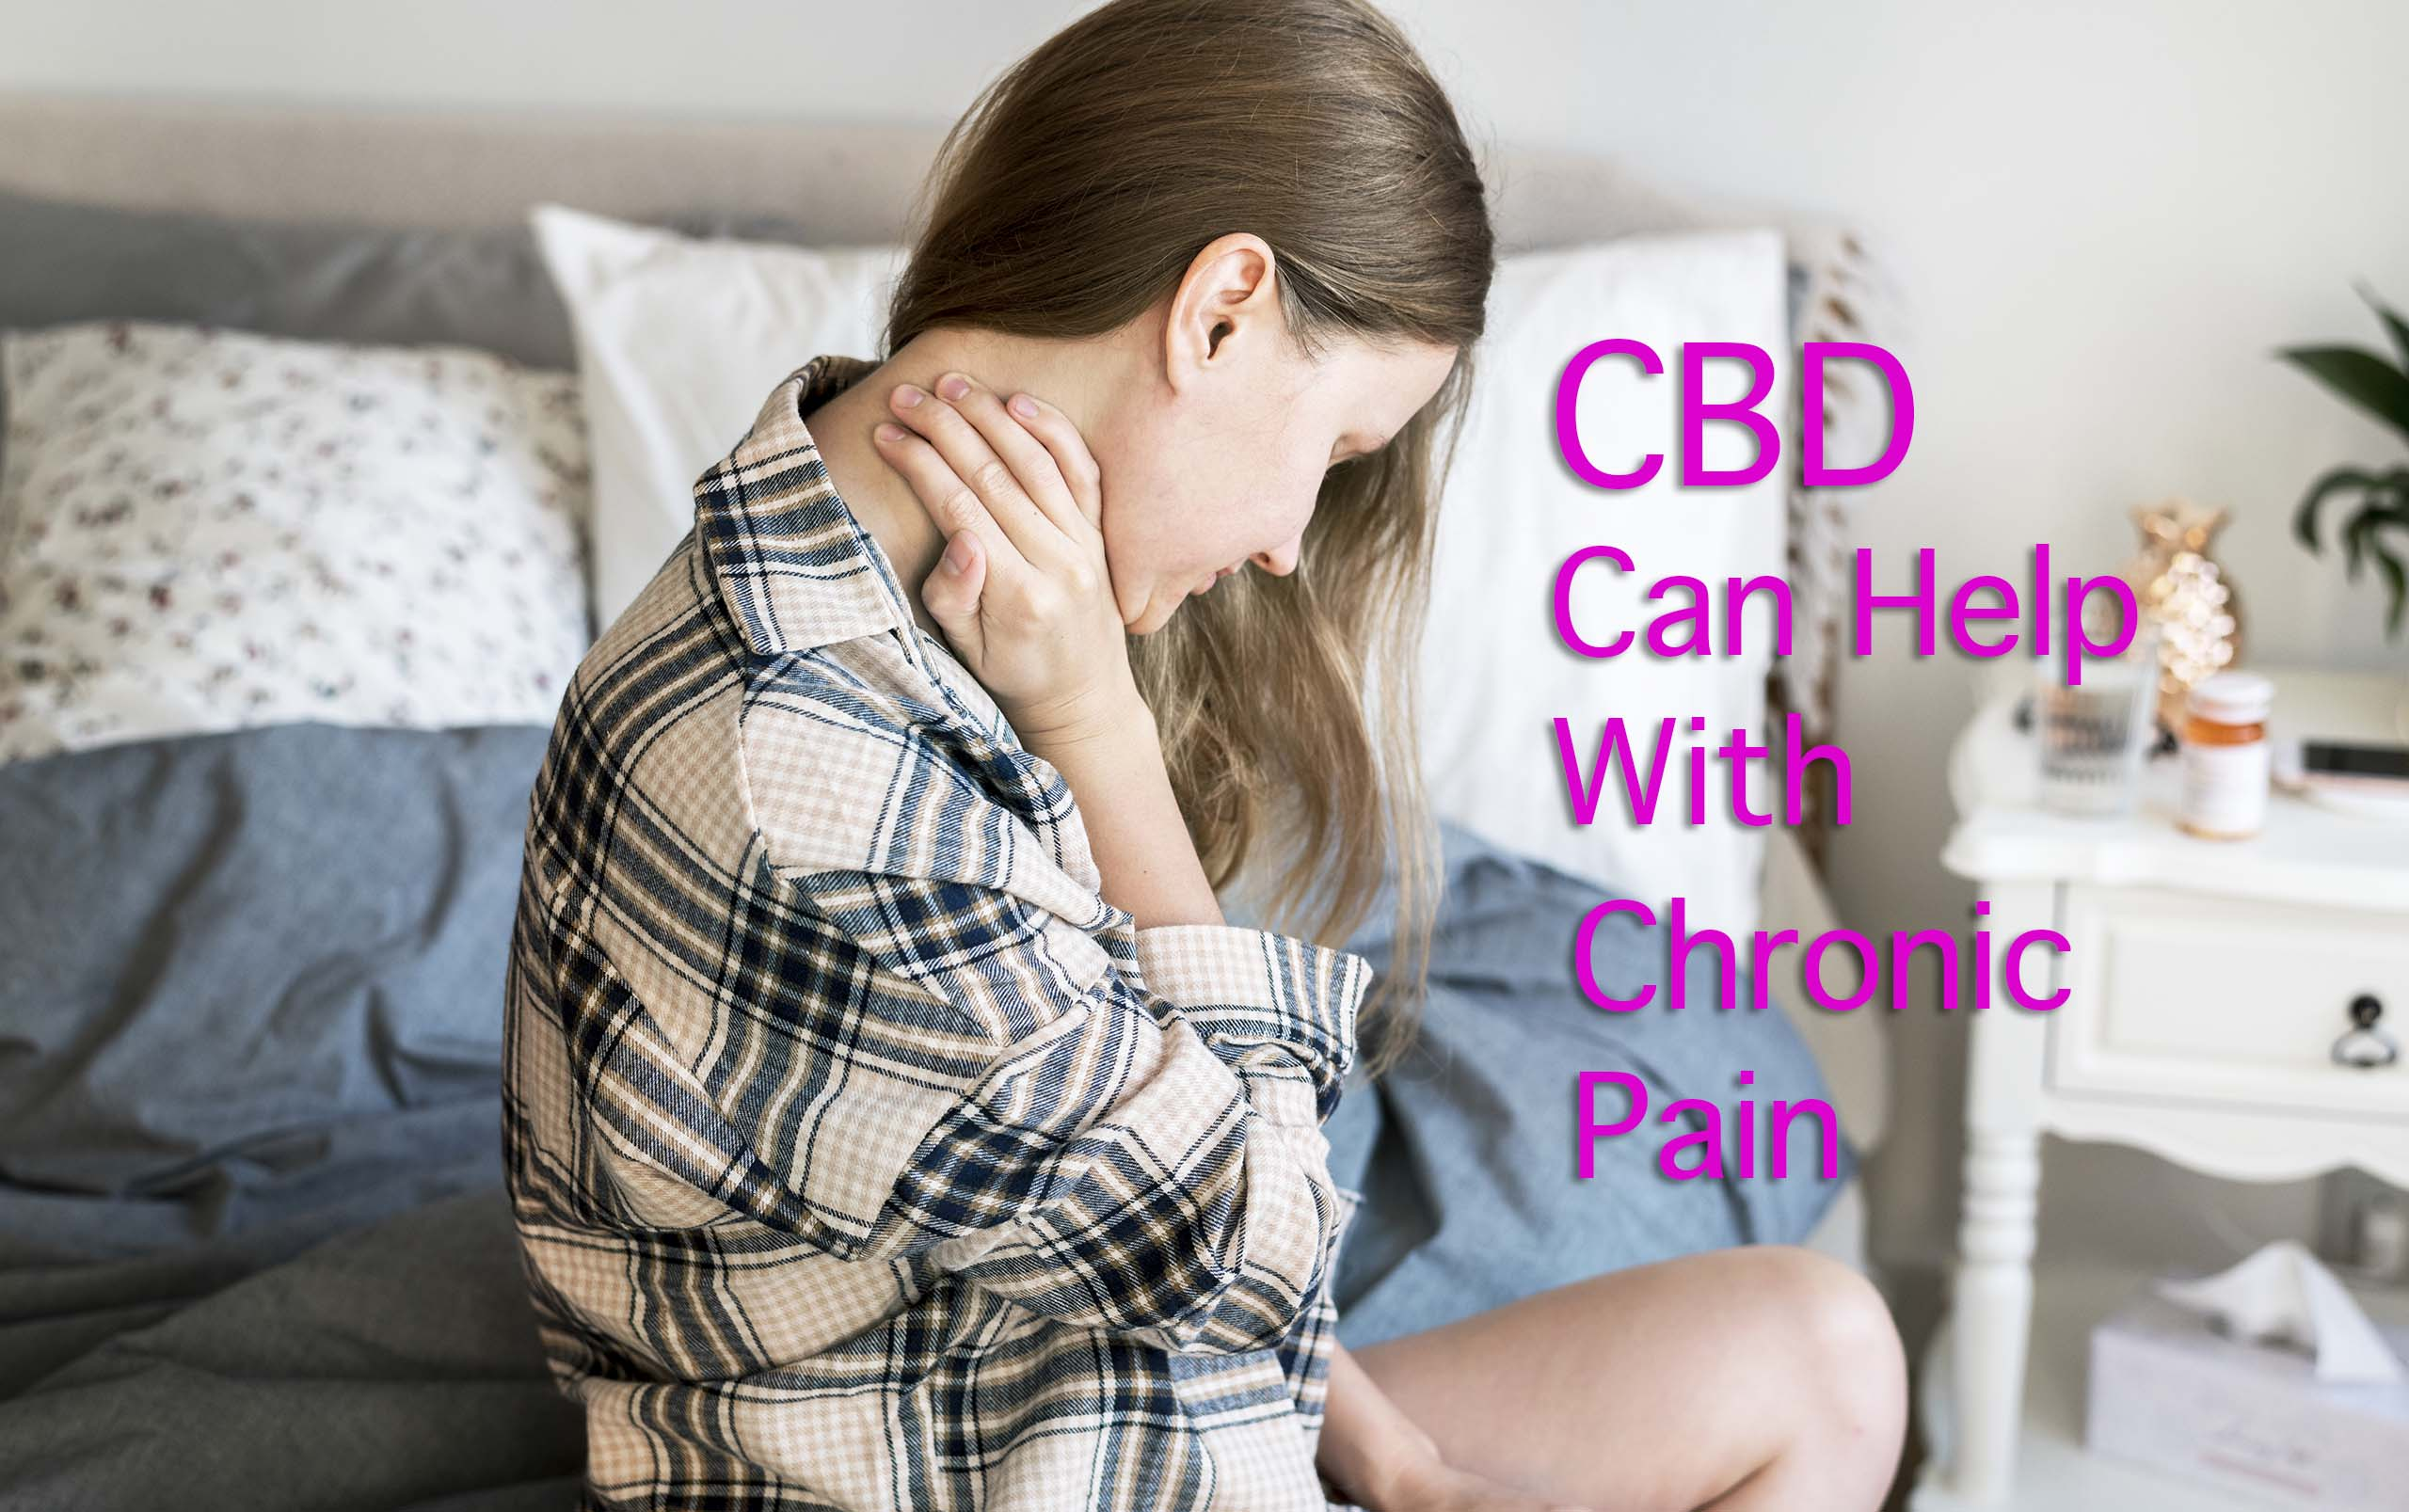 CBD CAN HELP WITH ARTHRITIS & CHRONIC PAIN RELIEF